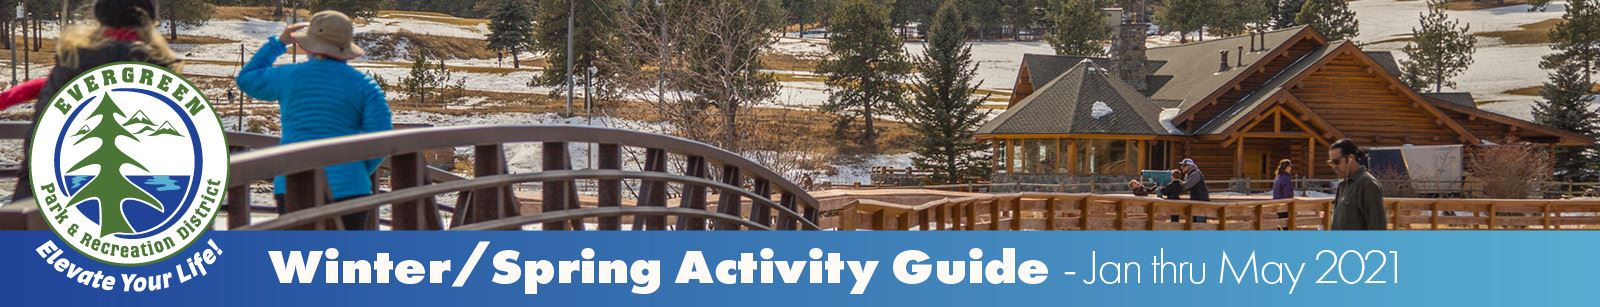 Activity Guide Winter Spring 2021. Photo showing people walking around Evergreen Lake House.